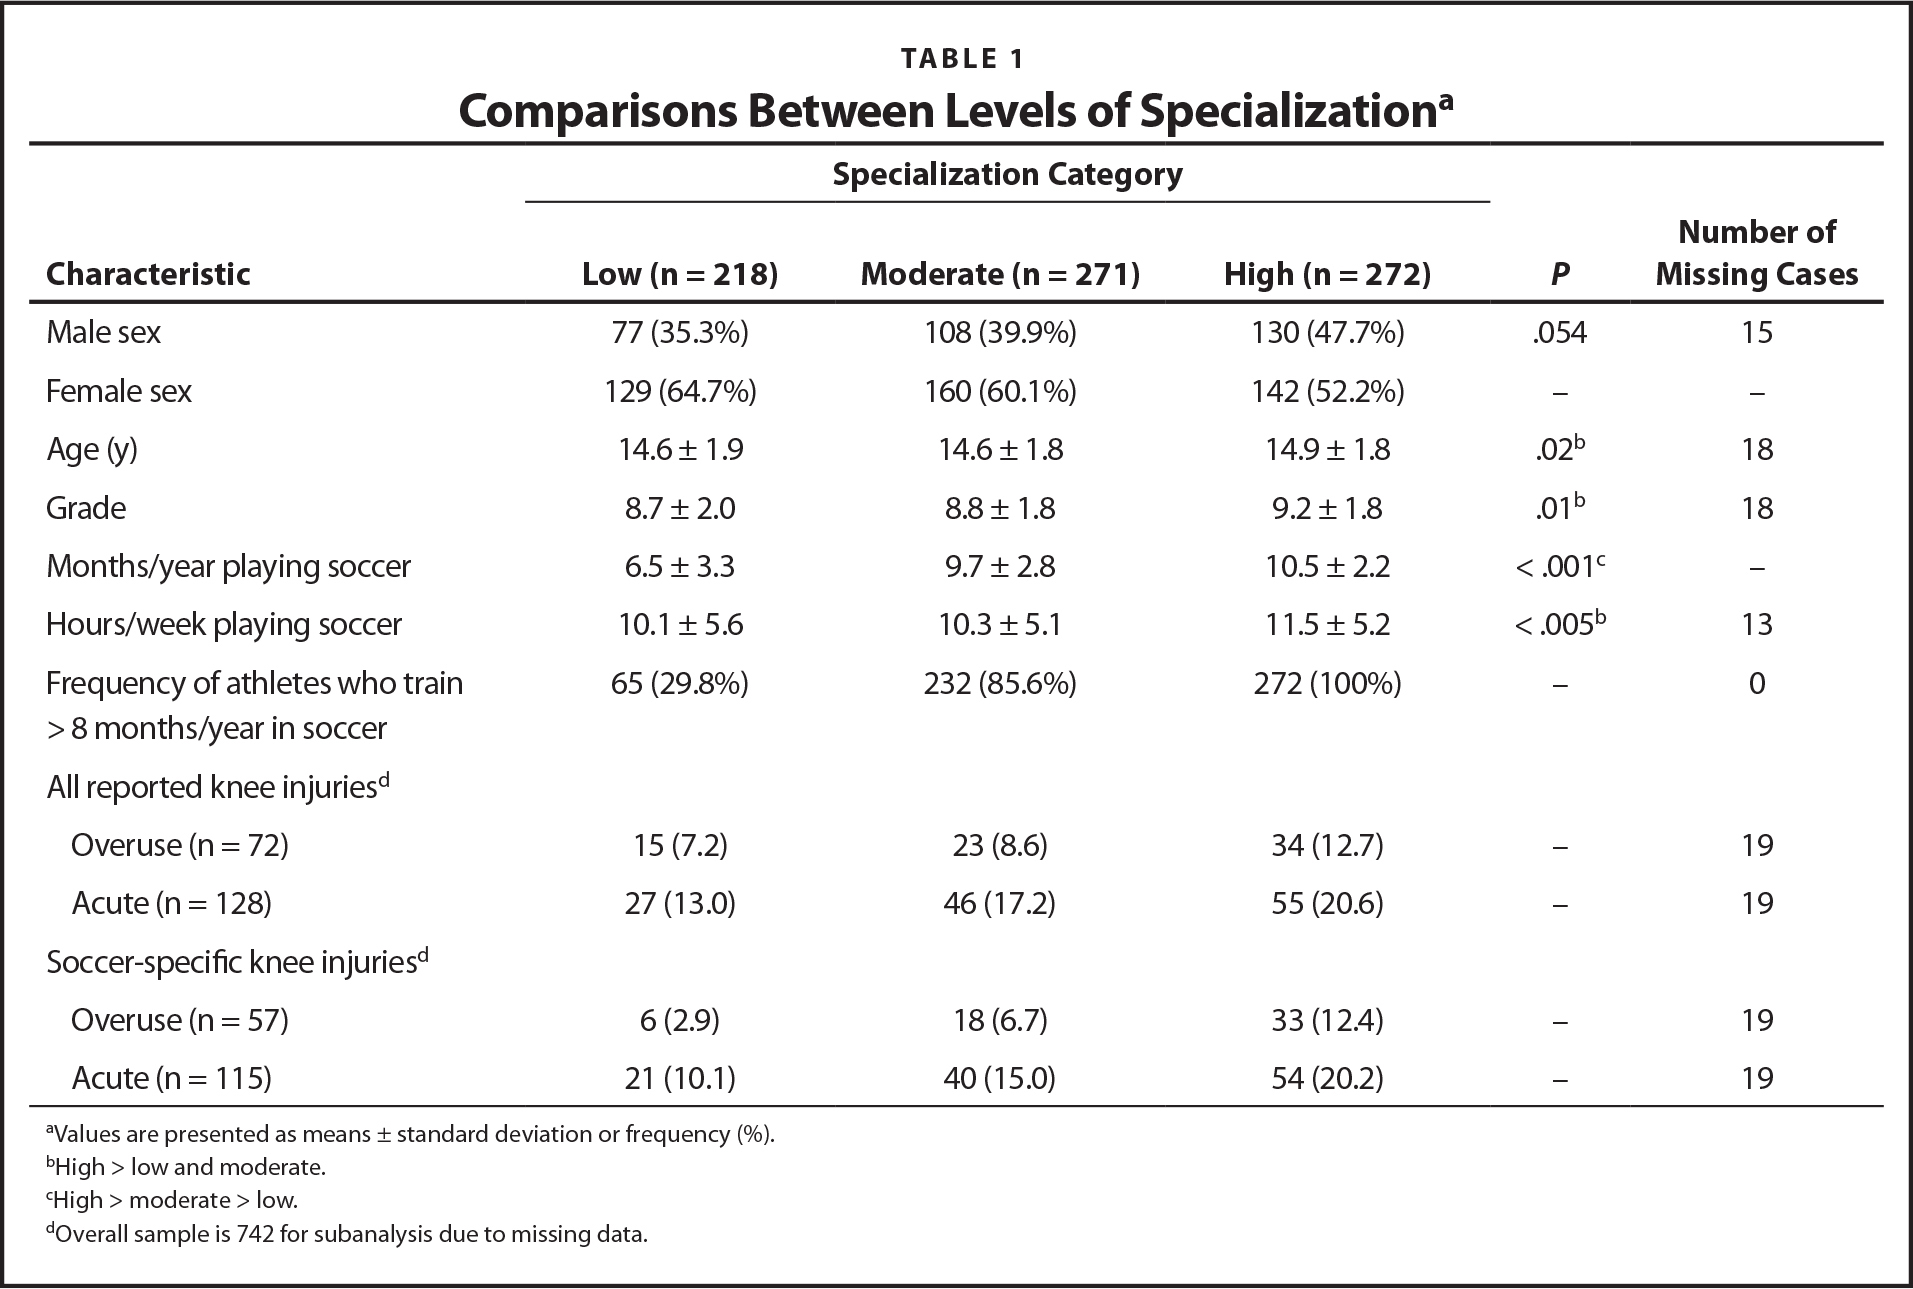 Comparisons Between Levels of Specializationa